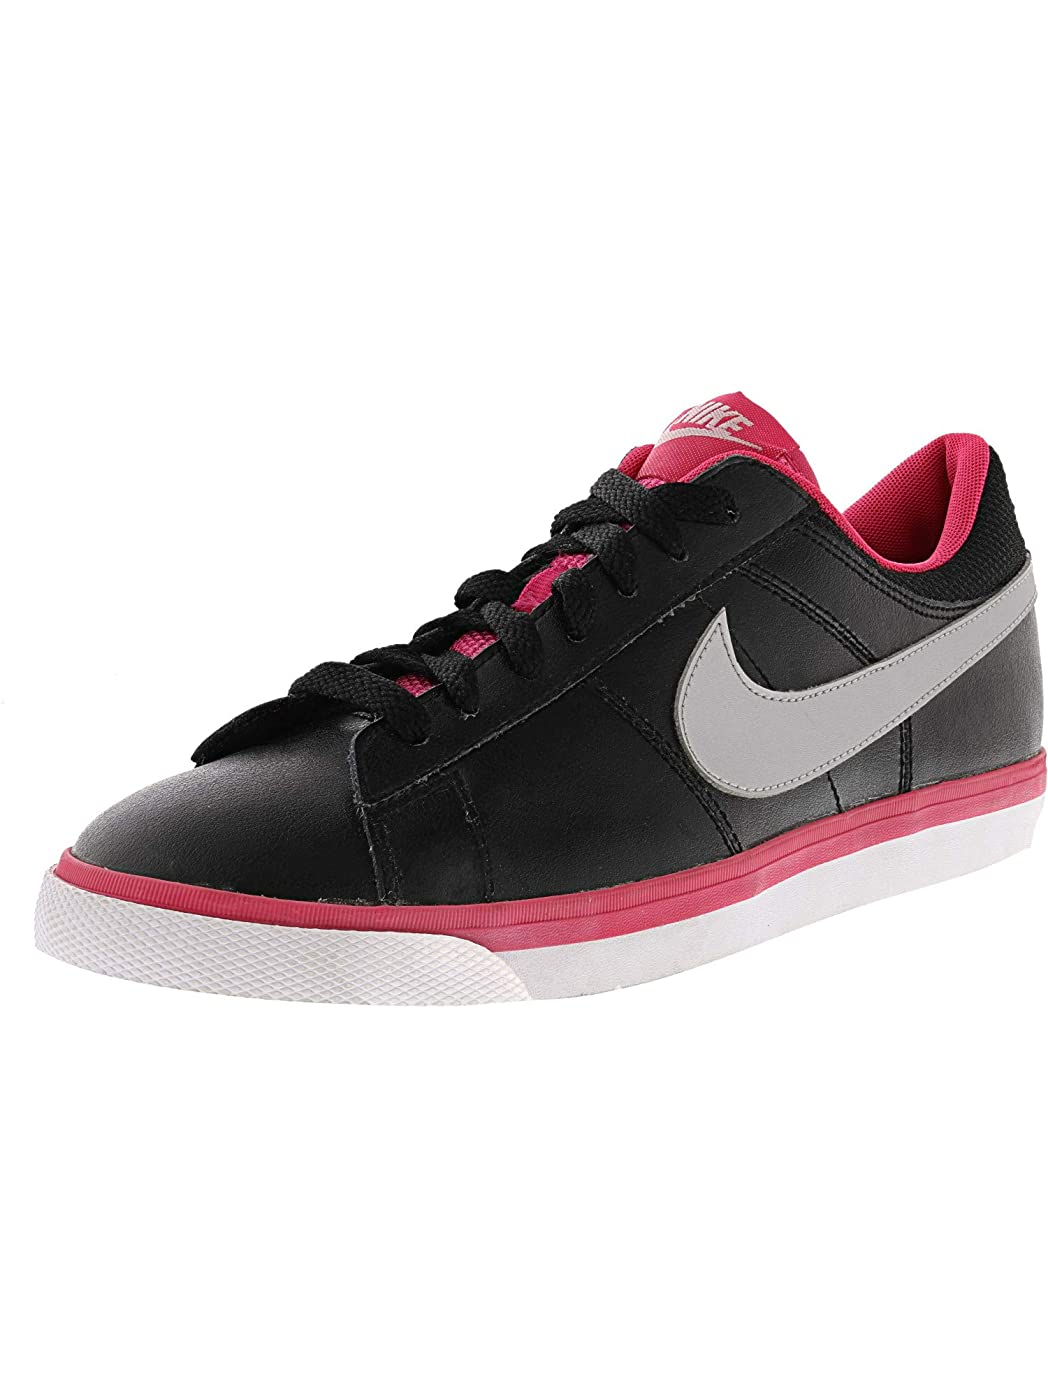 ねじれ地域整理するNike Women's 631461 001 Ankle-High Fashion Sneaker - 12M